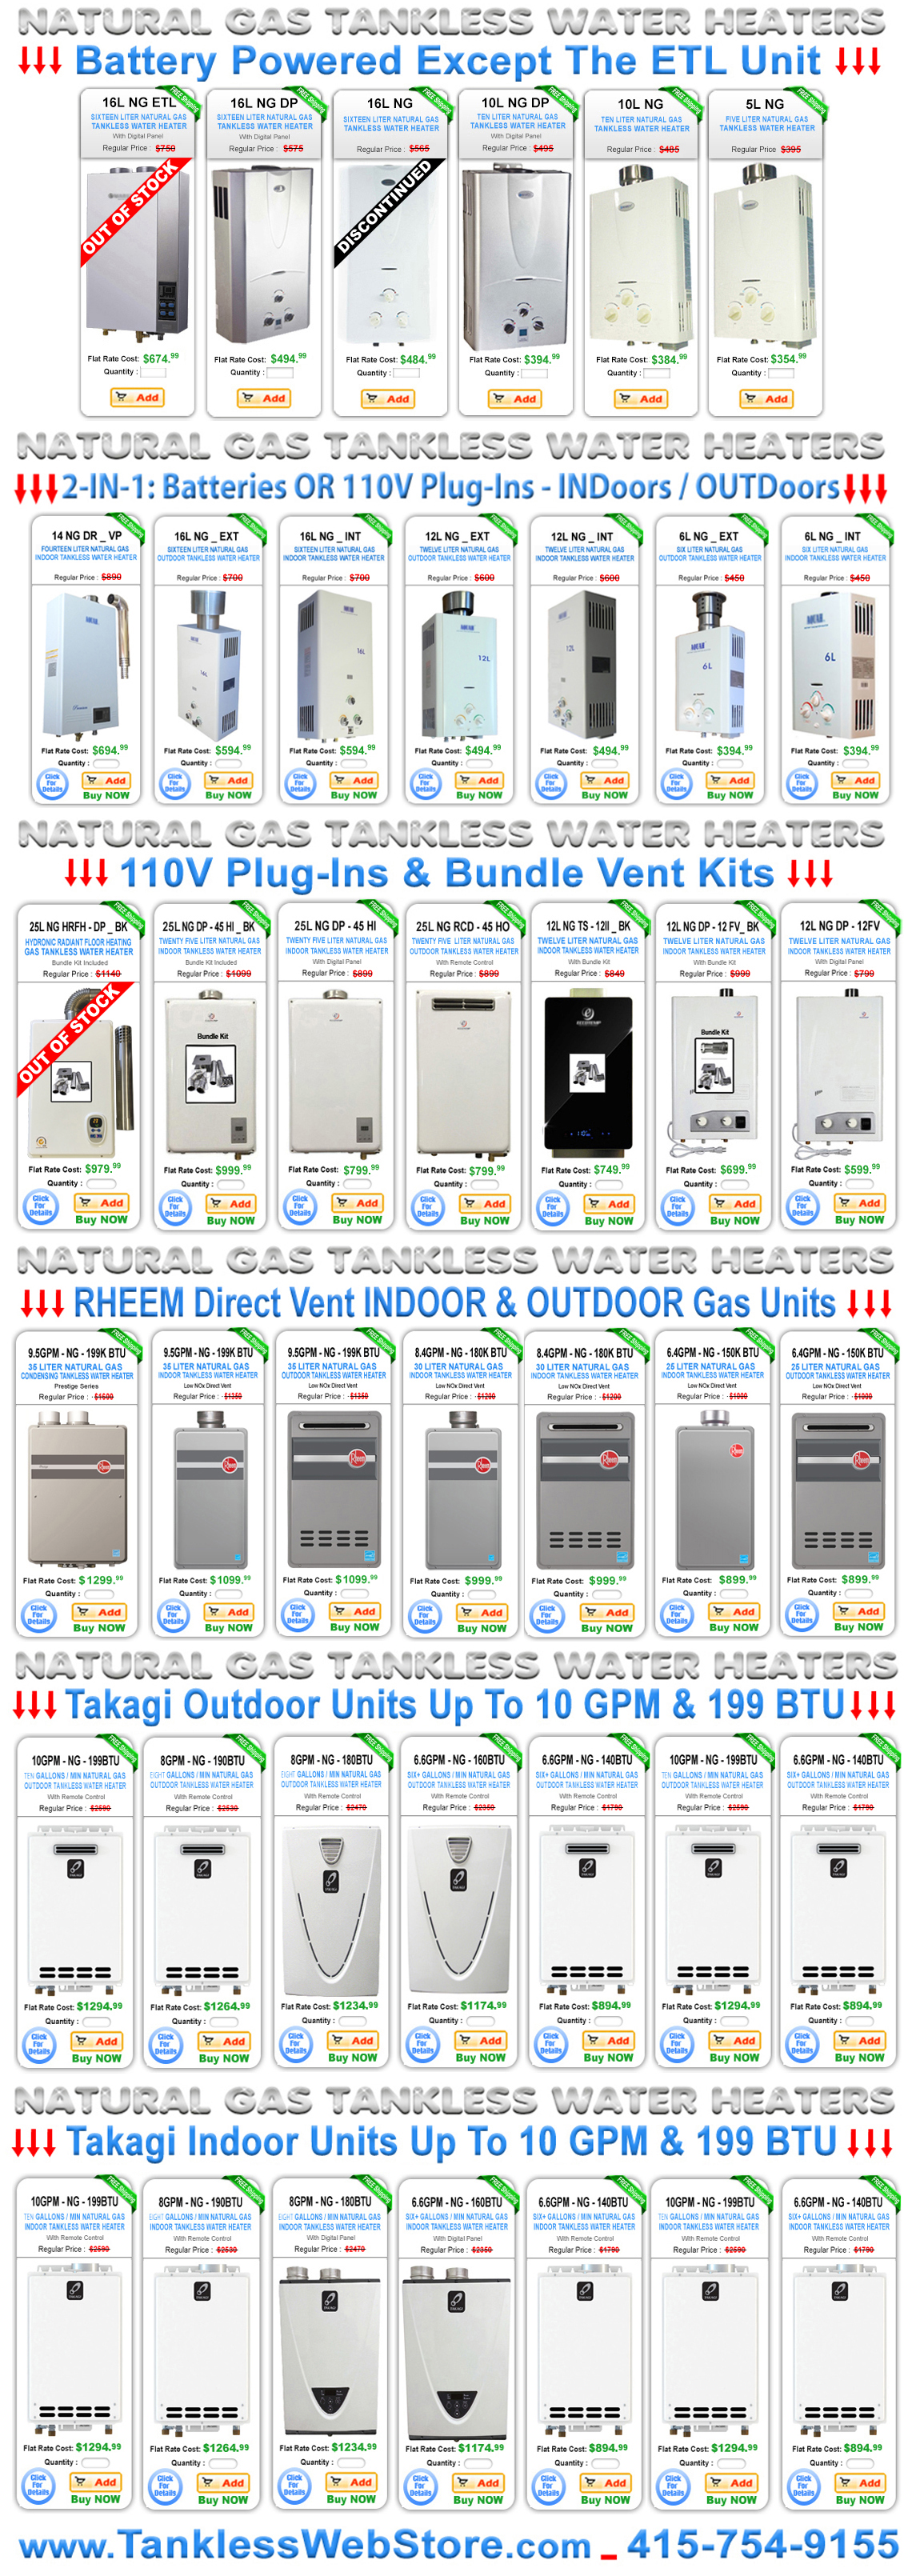 Top Gas Tankless Water Heater Reviews Now